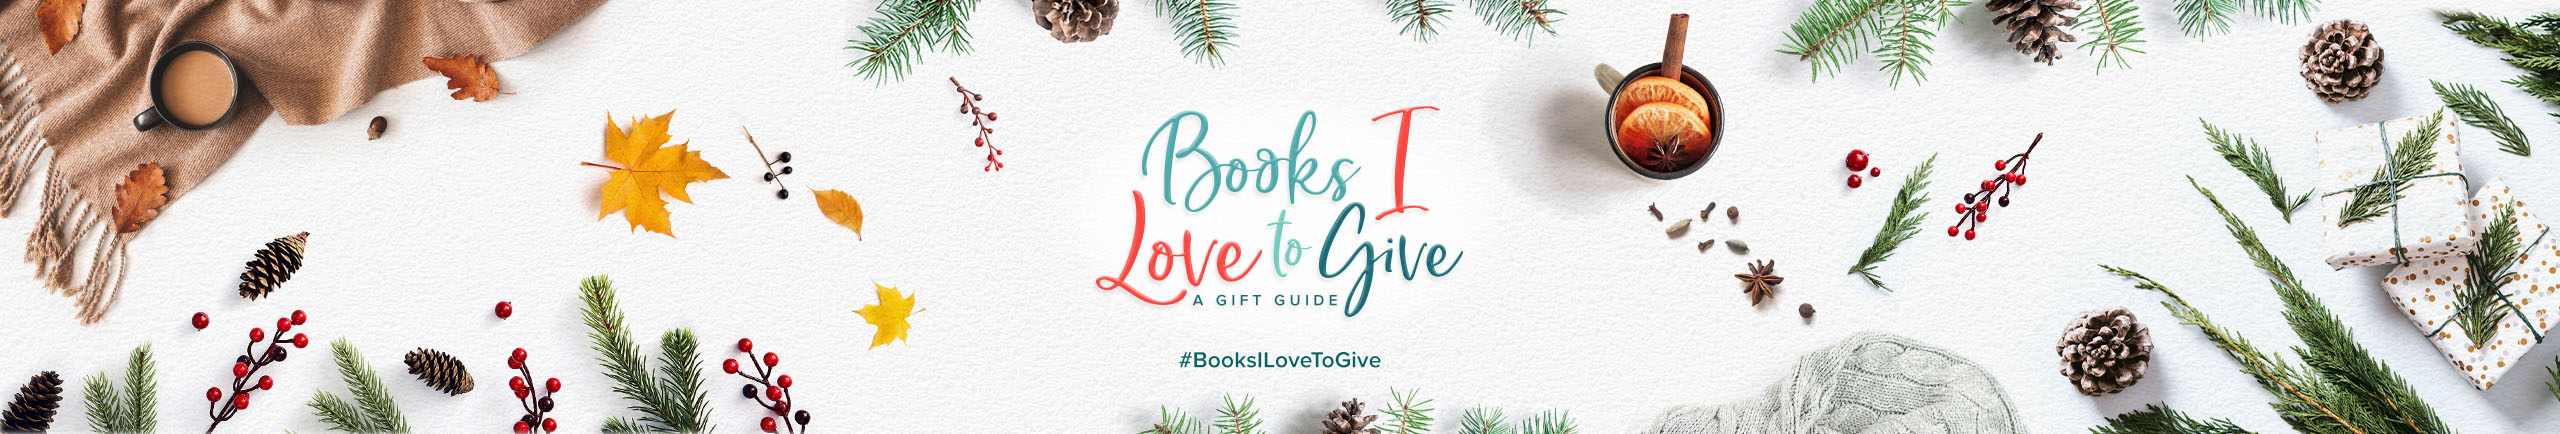 Books I Love To Give